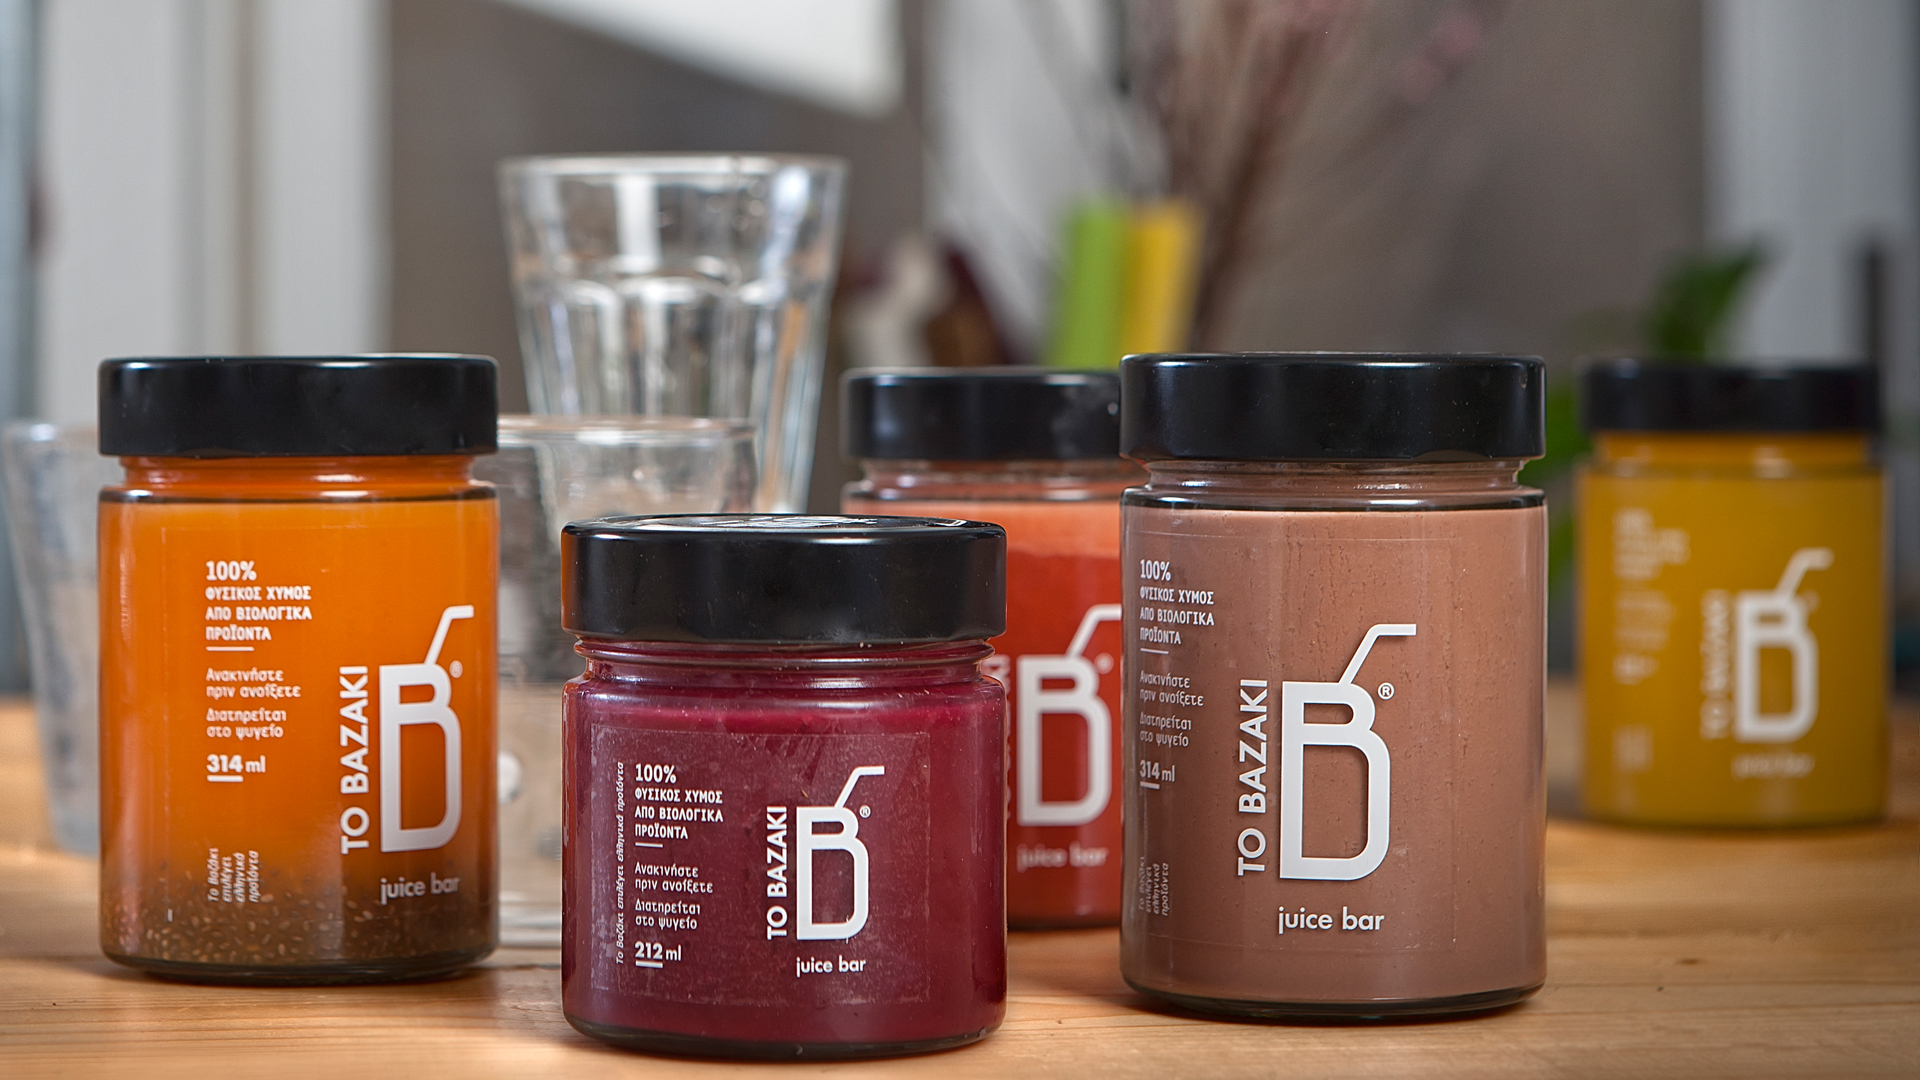 Bazaki-juices-in-Greece-Foodadit